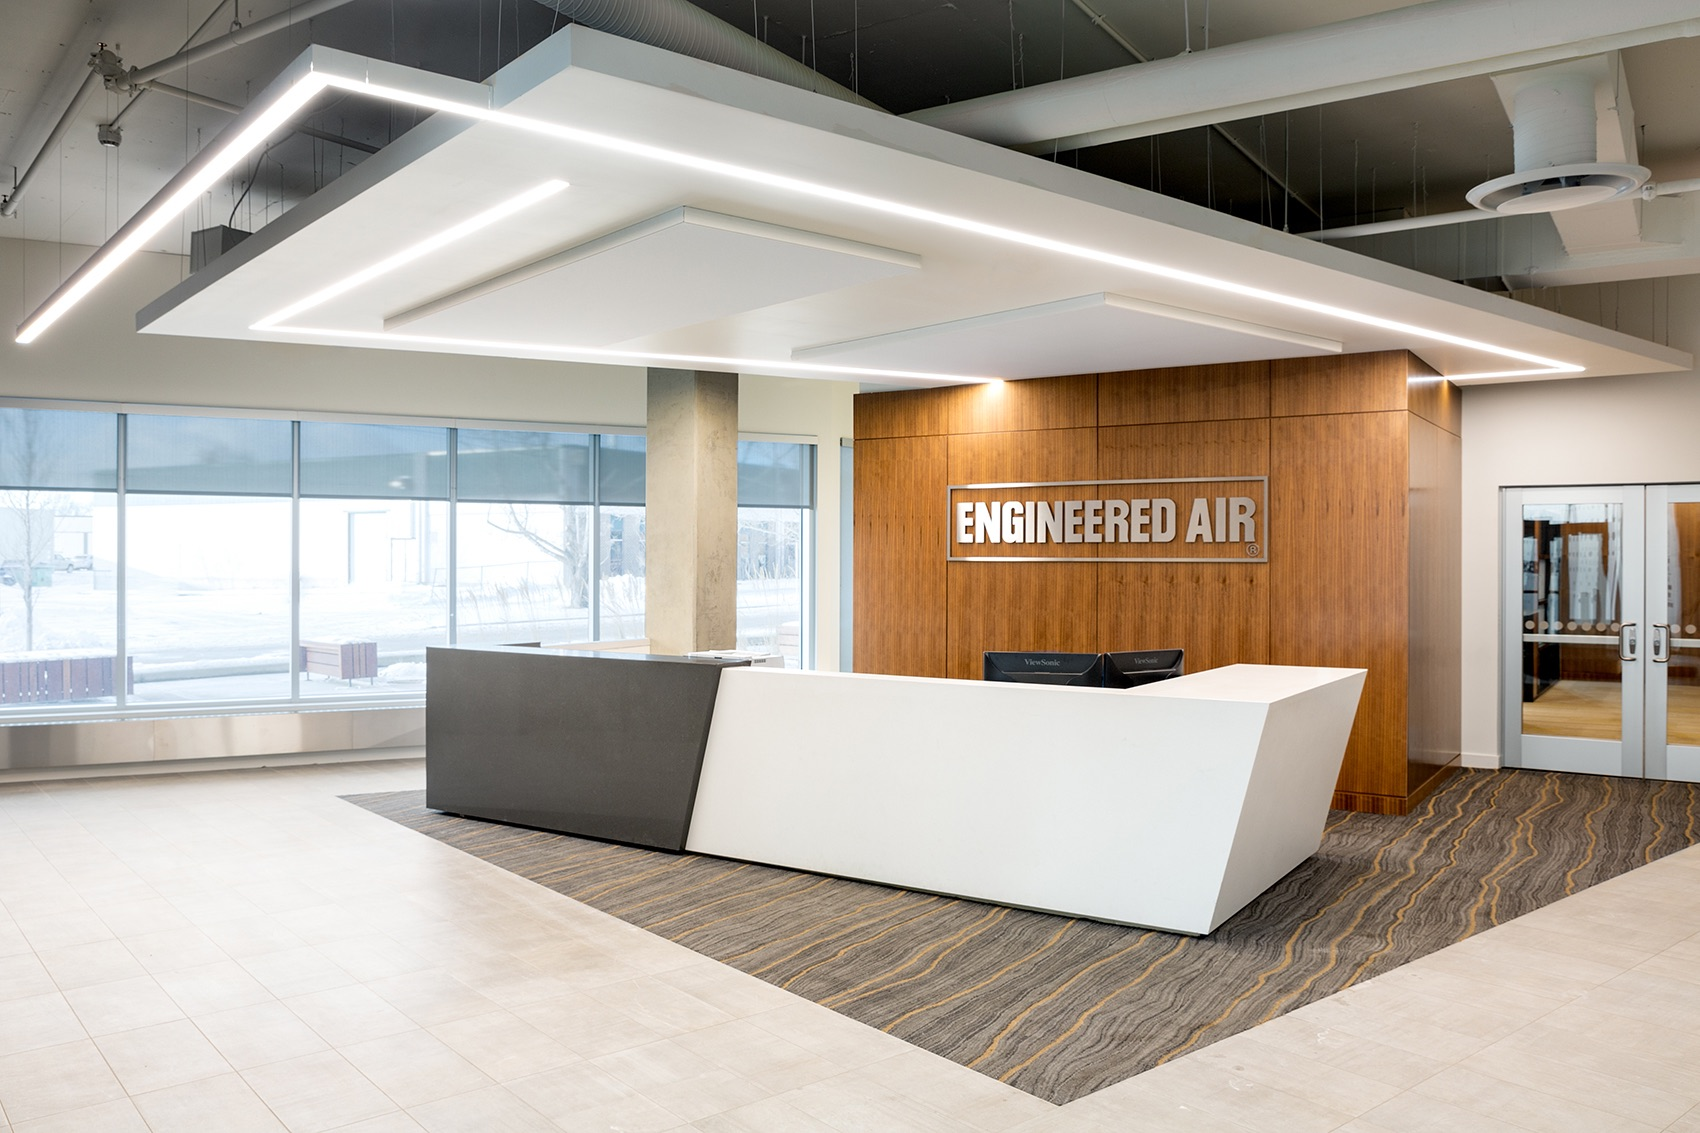 A Look Inside Engineered Air's Modern Calgary Office